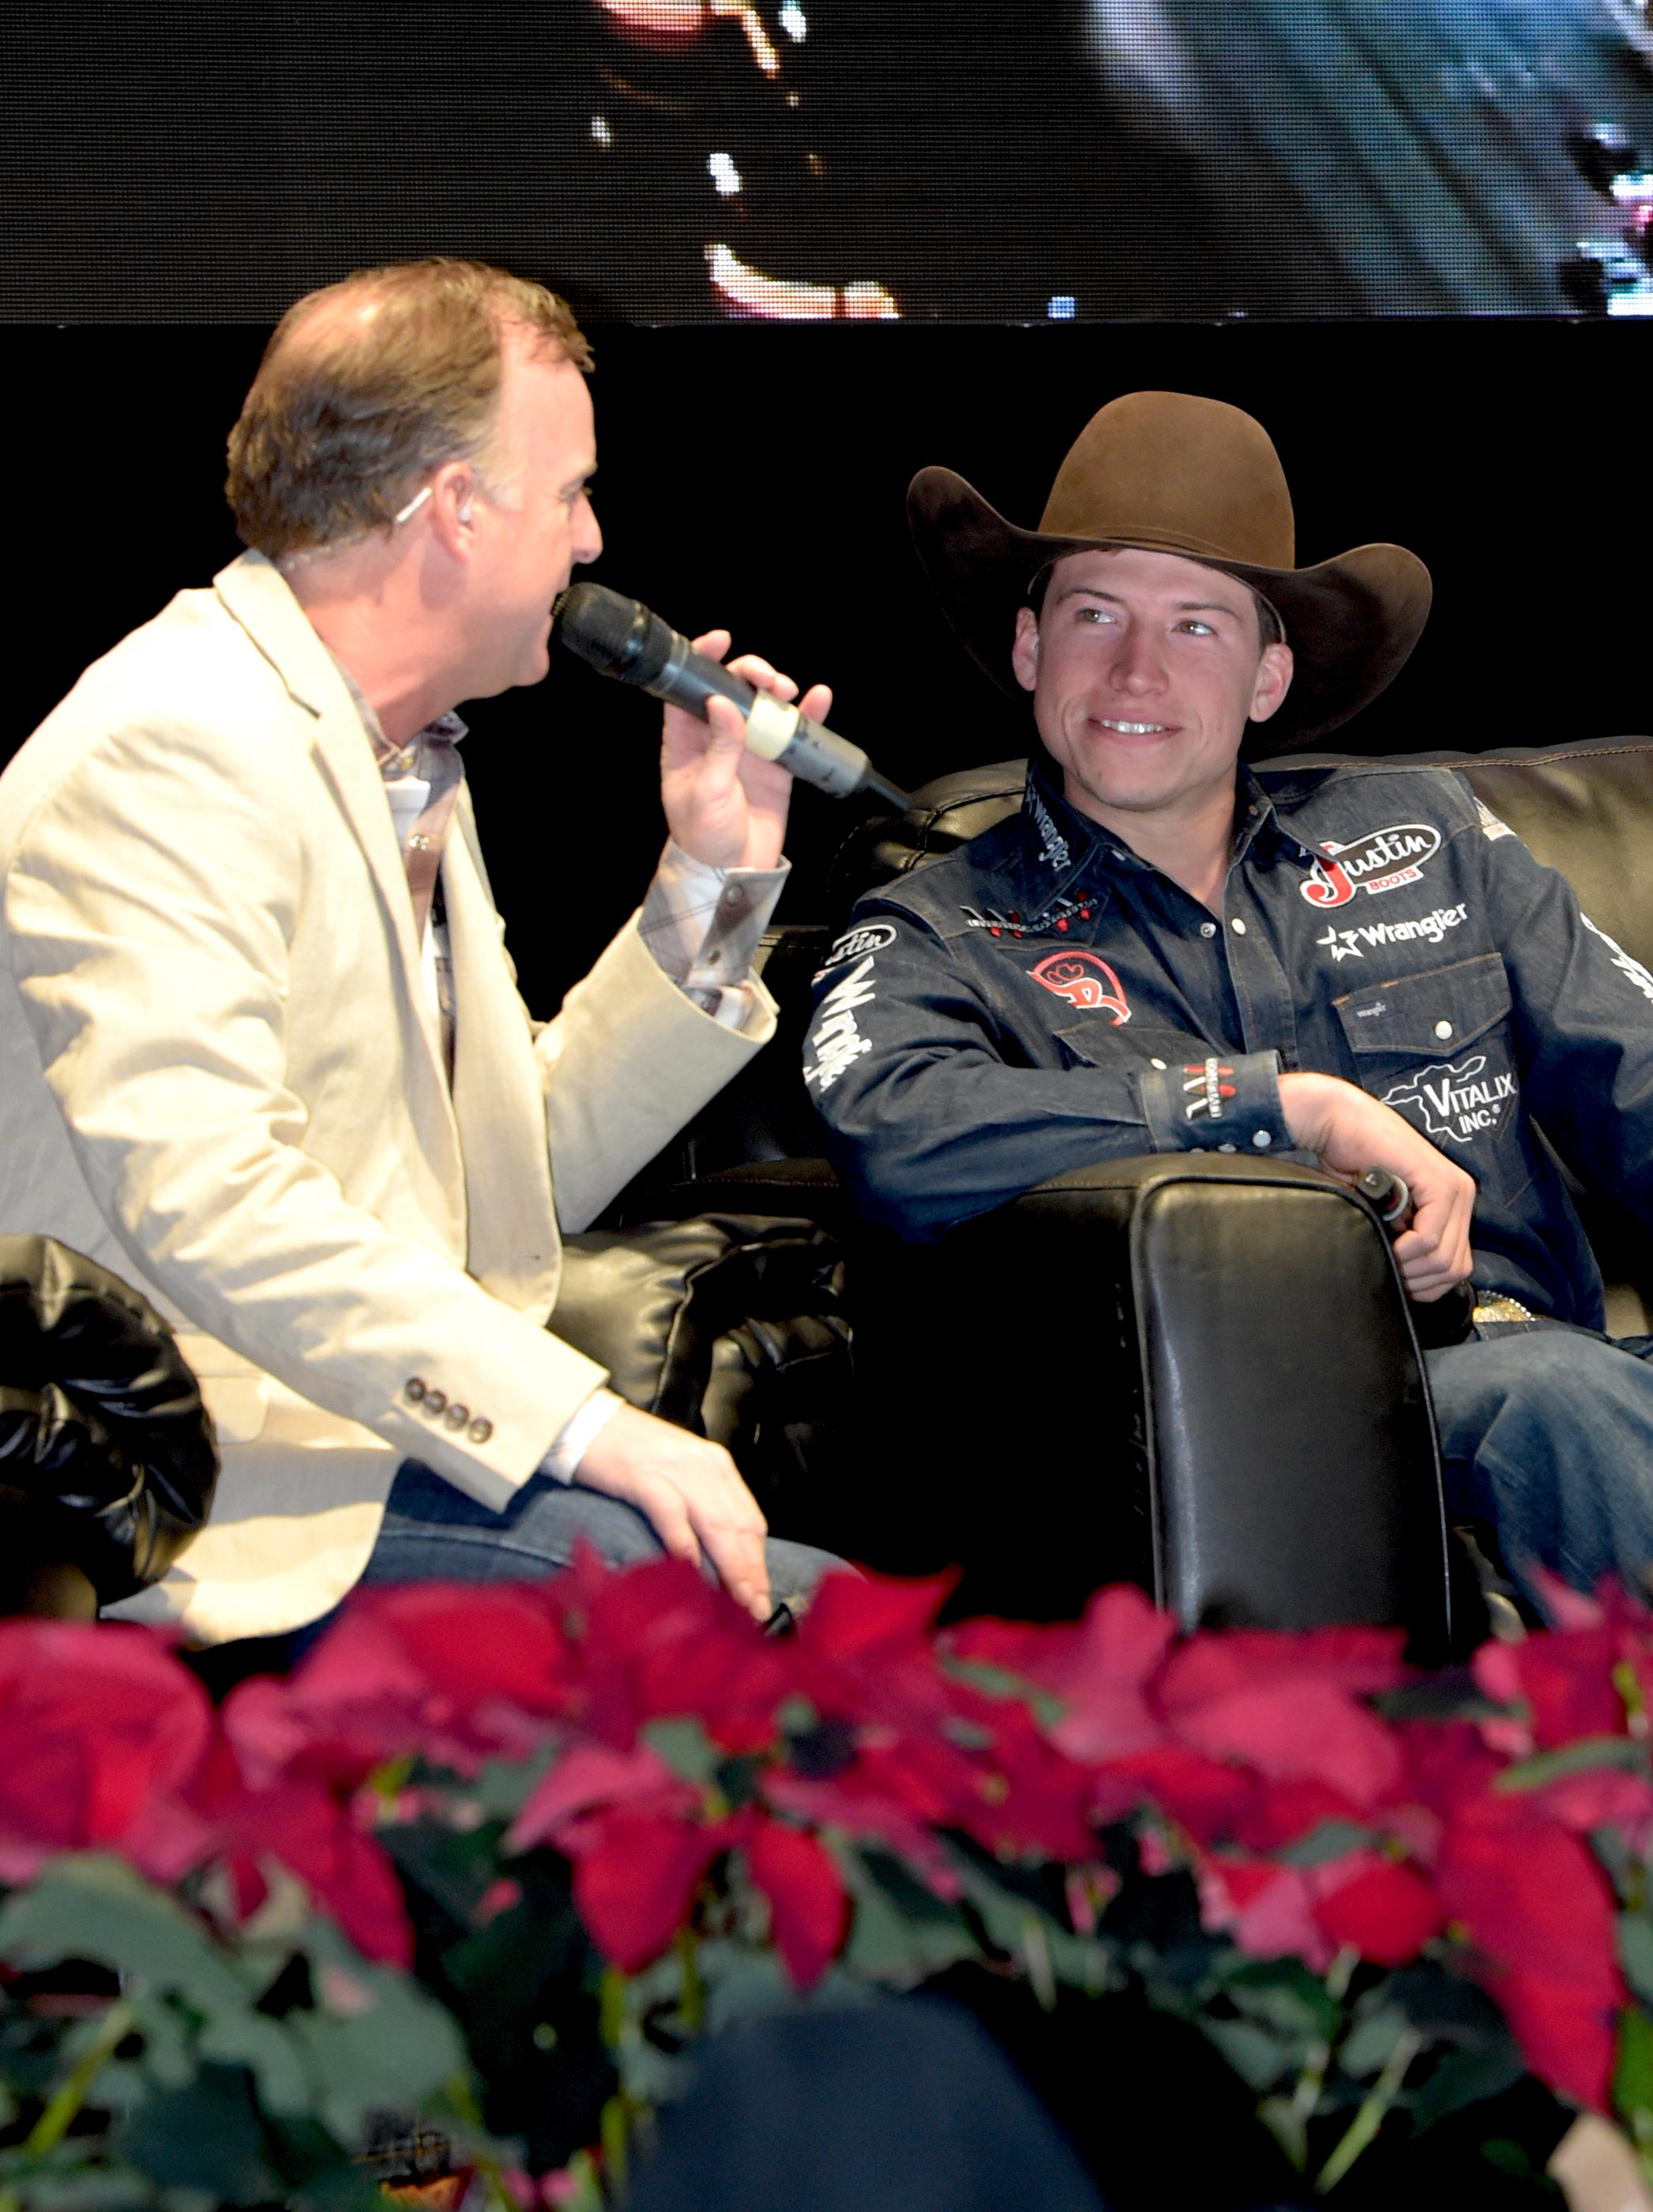 Outside the Barrel with Flint Rasmussen as he interviews Bull Rider Cody Webster on the Rodeo Live Stage during Cowboy Christmas at the Las Vegas Convention Center . Sunday December 10, 2017. [Glenn Pinkerton/Las Vegas News Bureau]